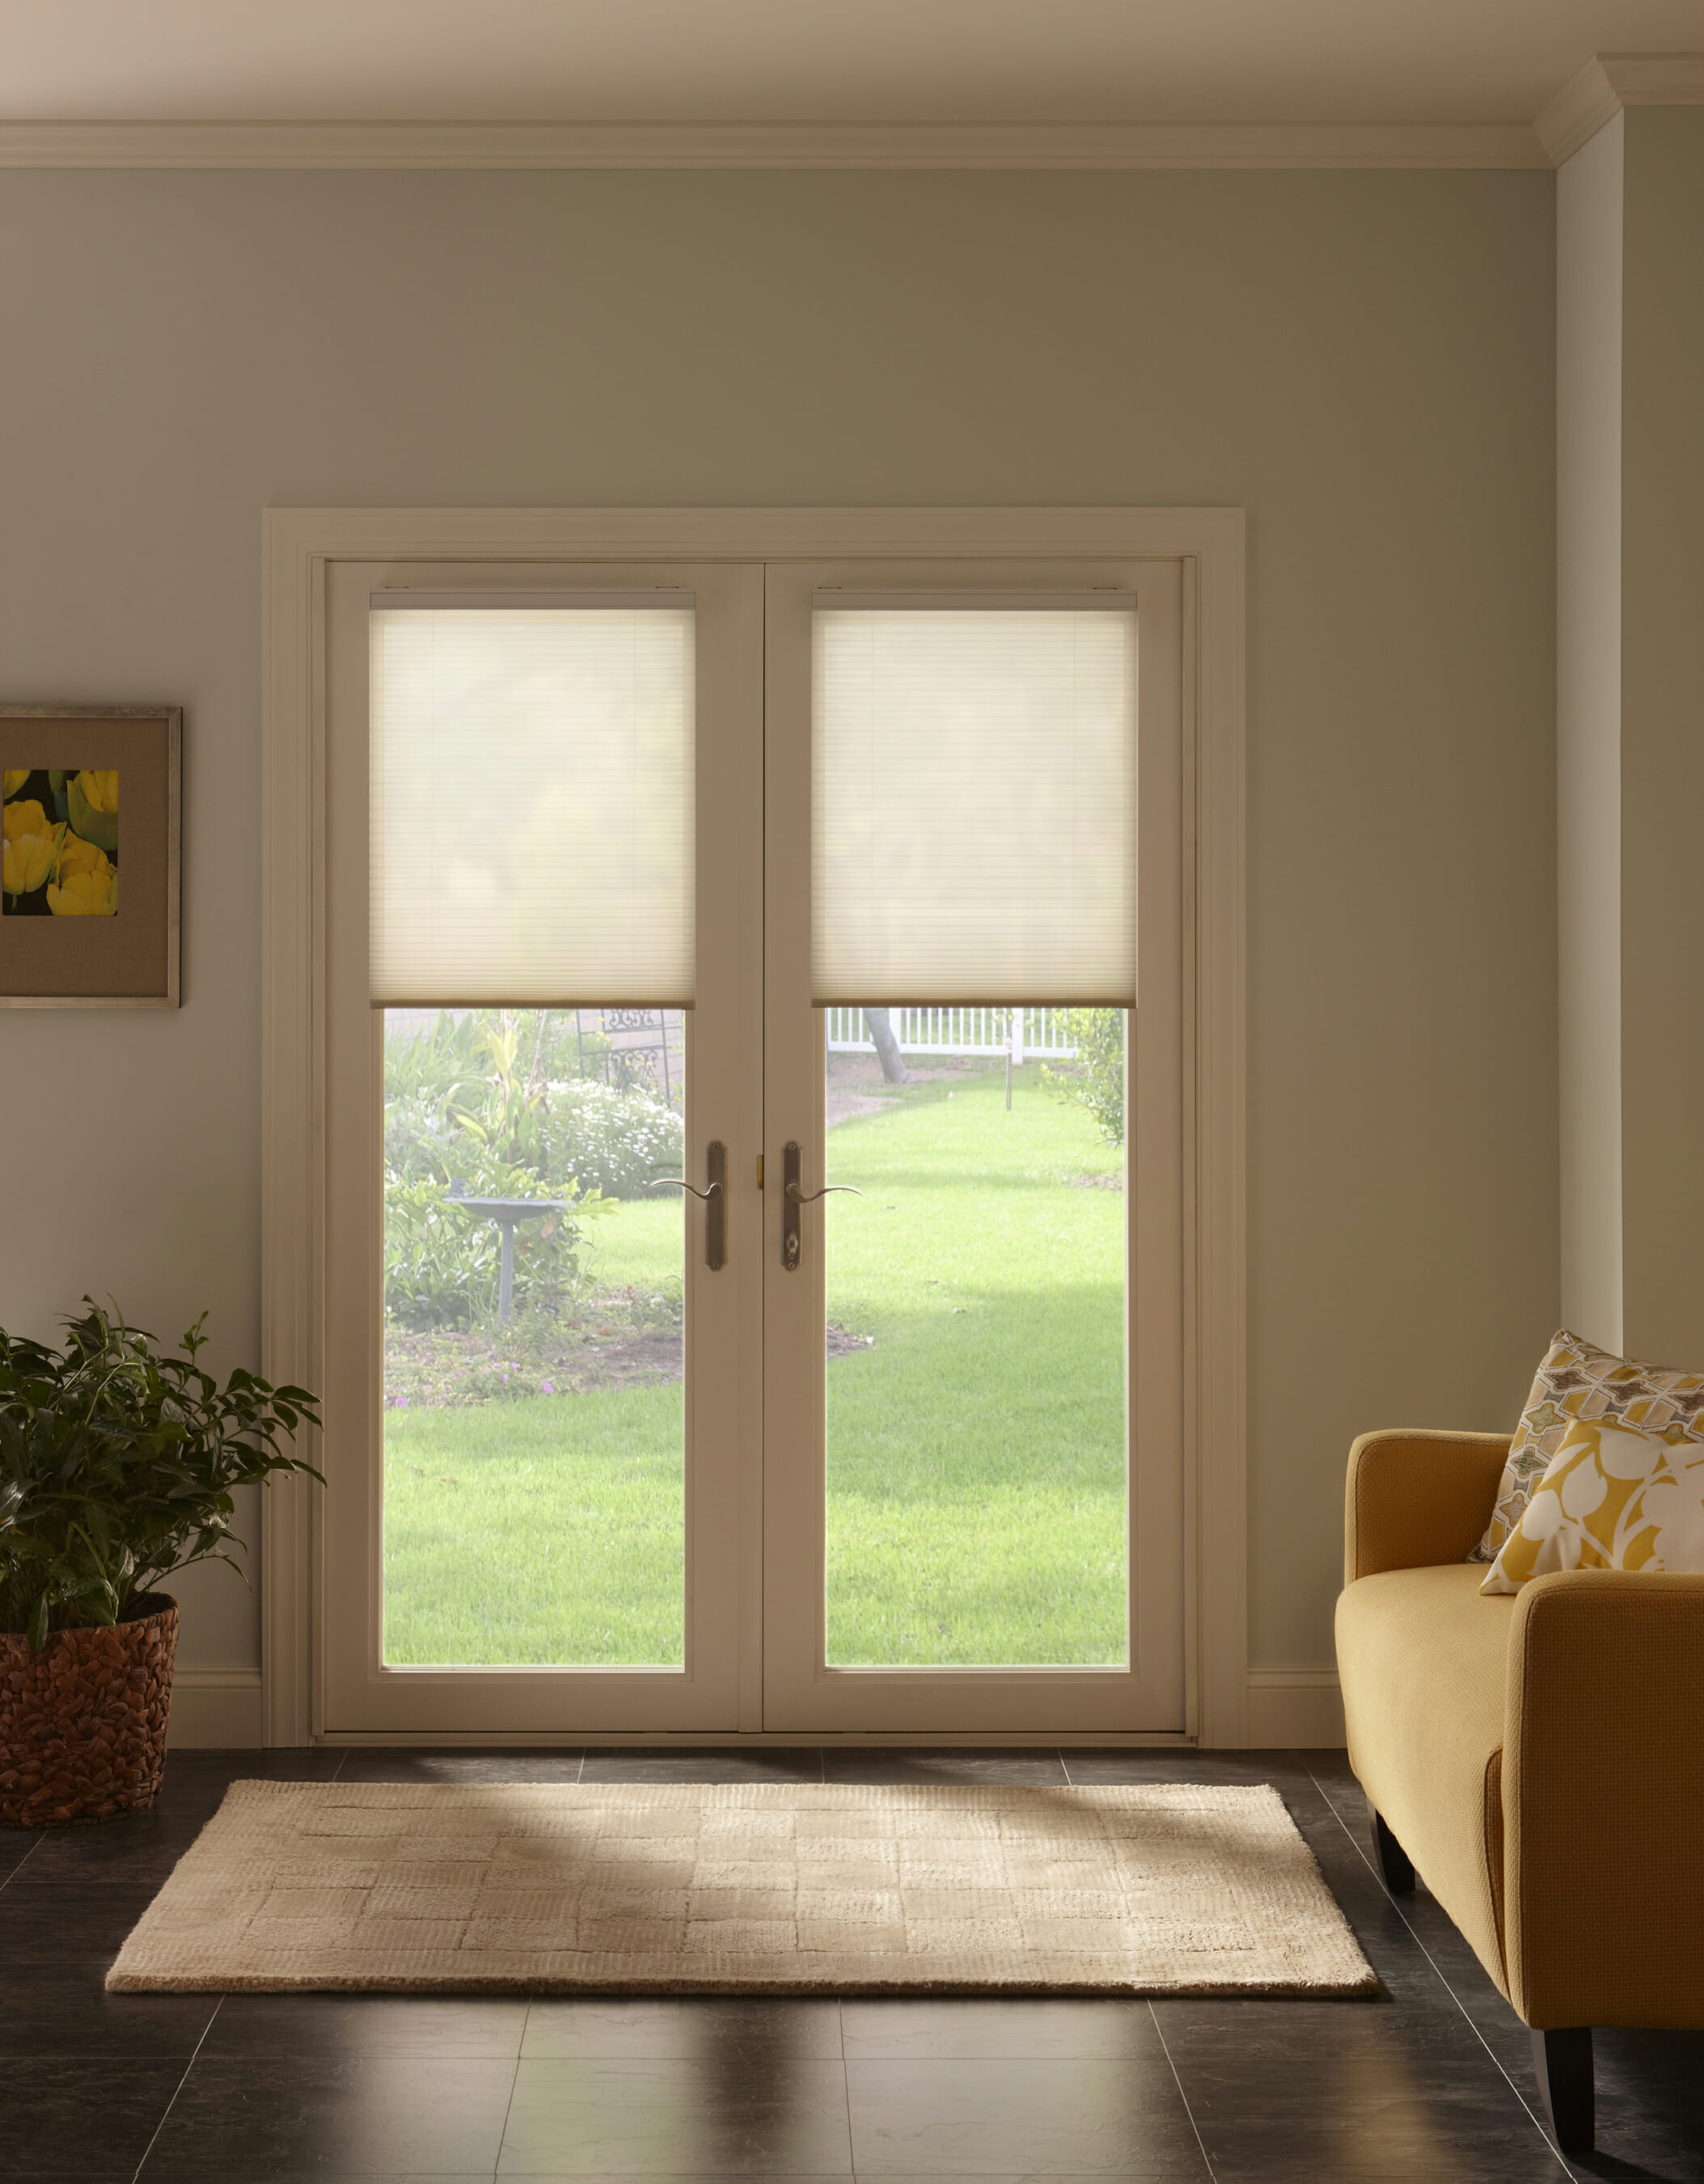 Window treatment ideas for doors 3 blind mice cell shades on french doors eventelaan Images